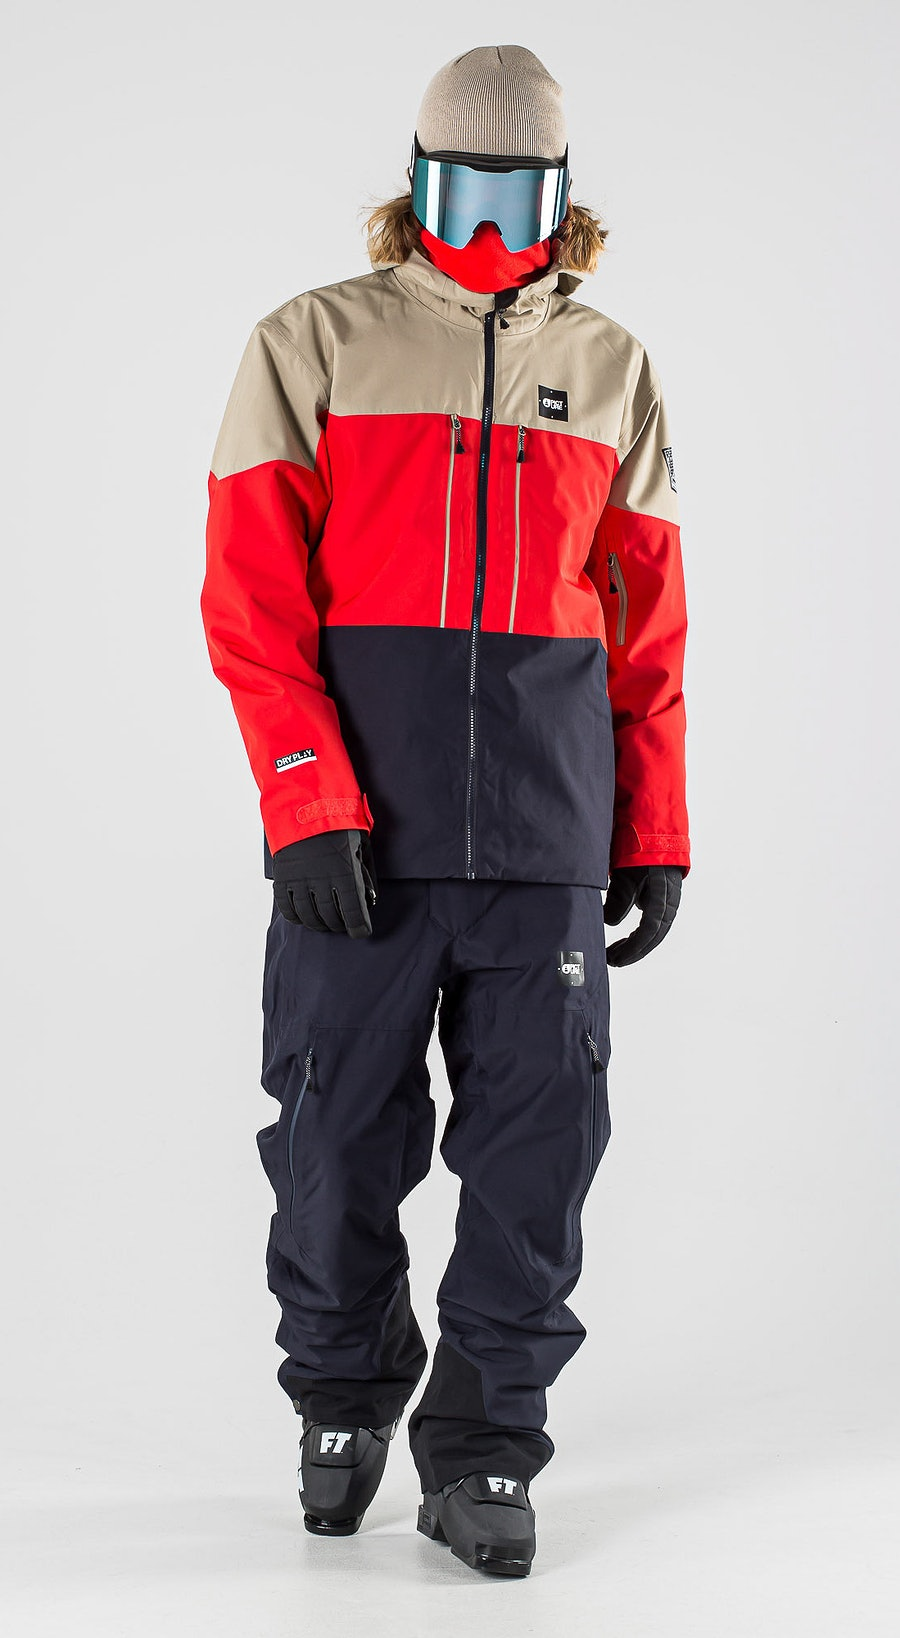 Picture Picture Object Red Dark Blue Ski kleding Multi